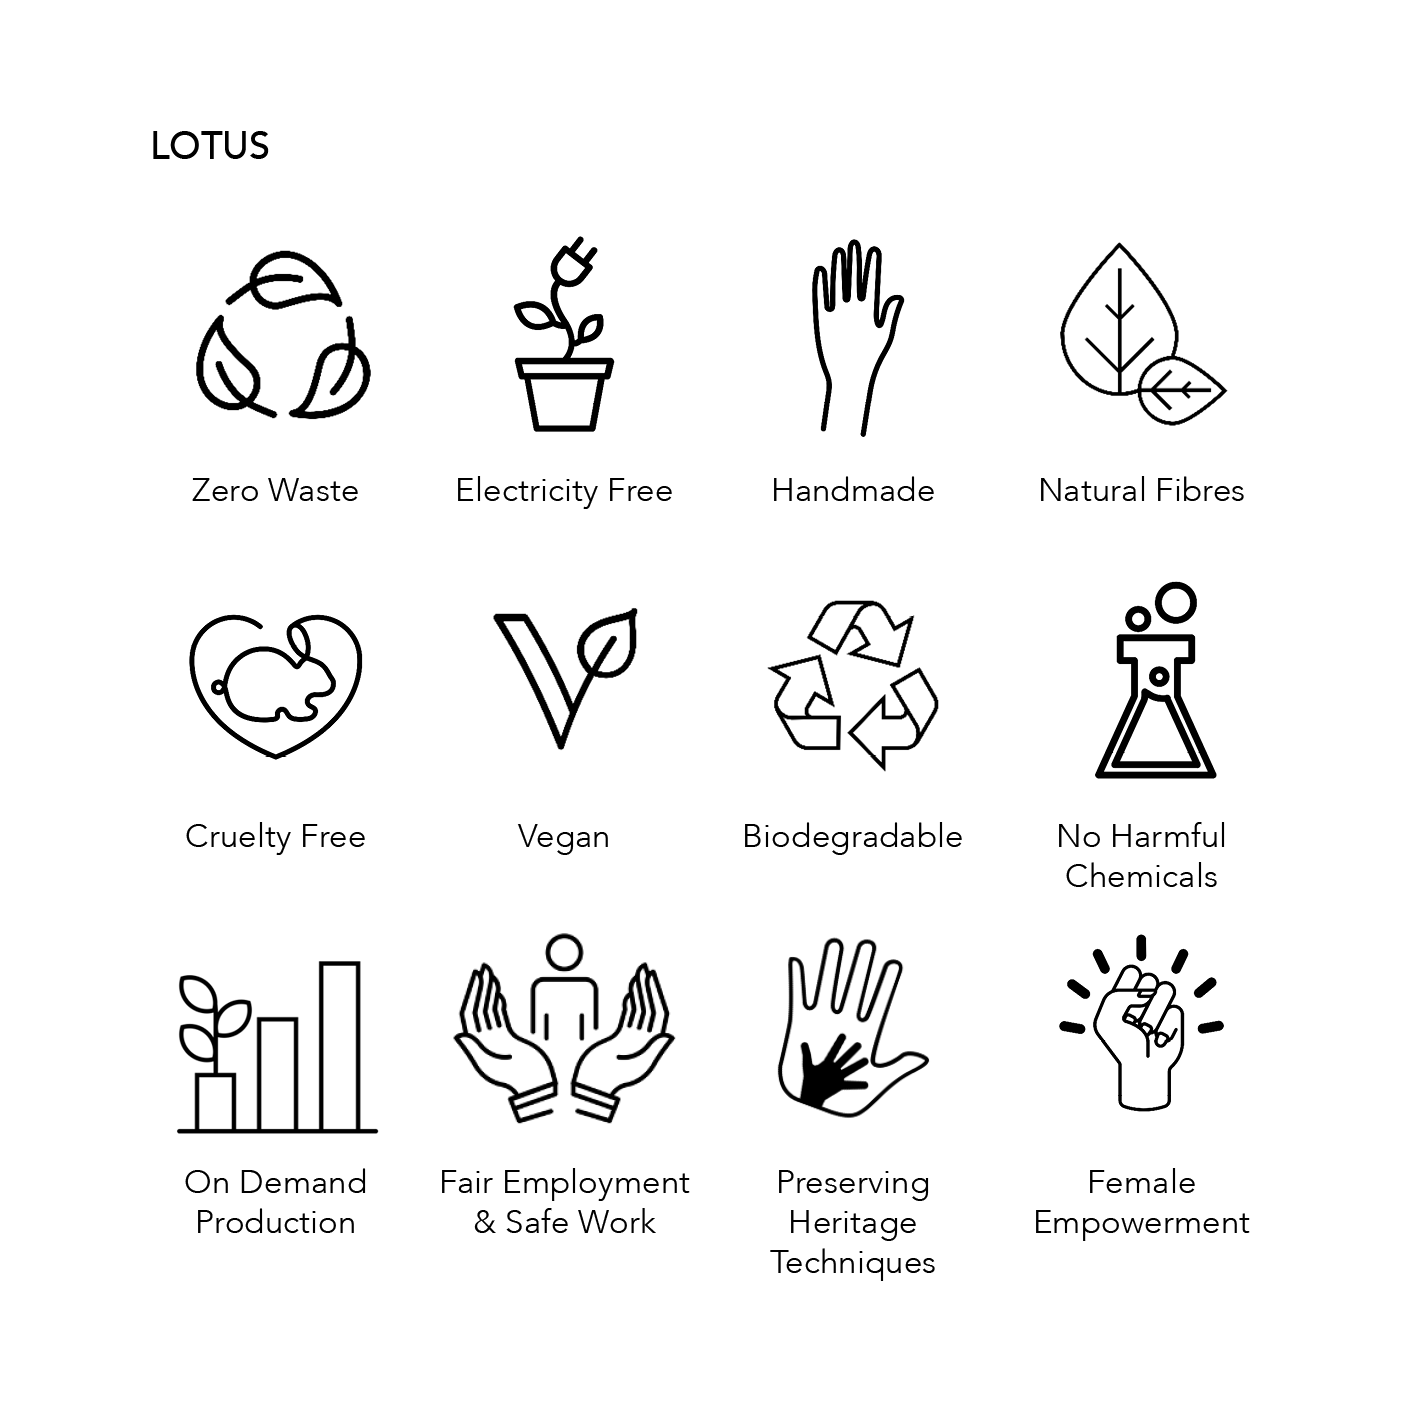 Lotus Fabric Sustainability Credentials; zero waste, electricity free, handmade, natural fibres, cruelty free, vegan, biodegradable, no harmful chemicals, on demand production, fair employment and safe work, preserving heritage techniques, female empowerment